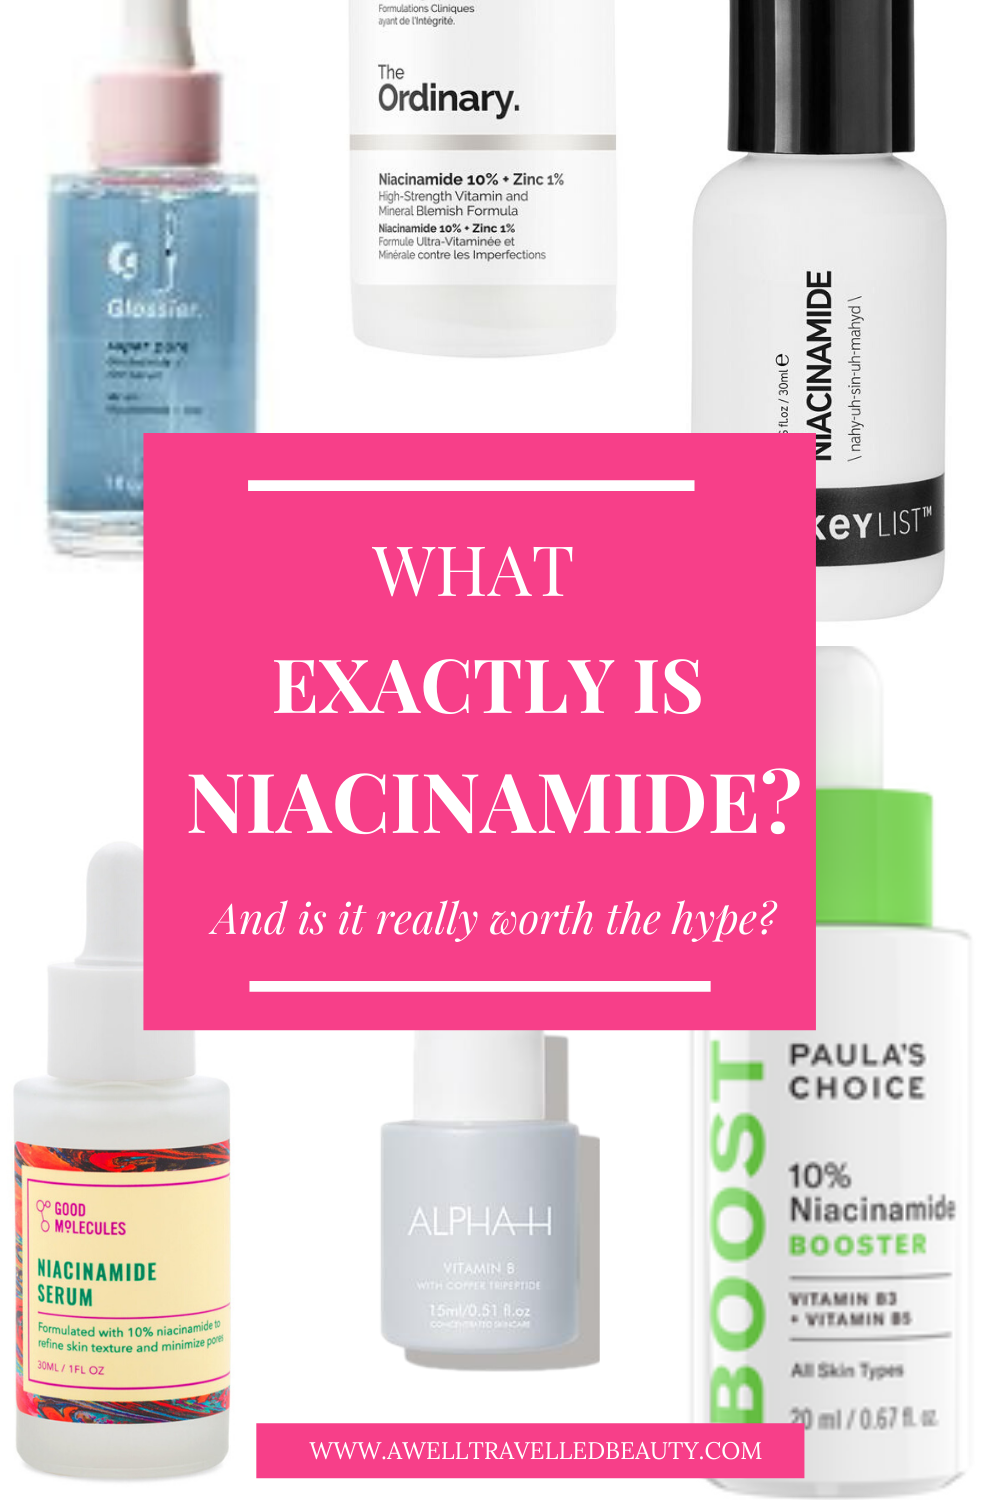 Beauty Hero Niacinamide A Well Travelled Beauty in 2020